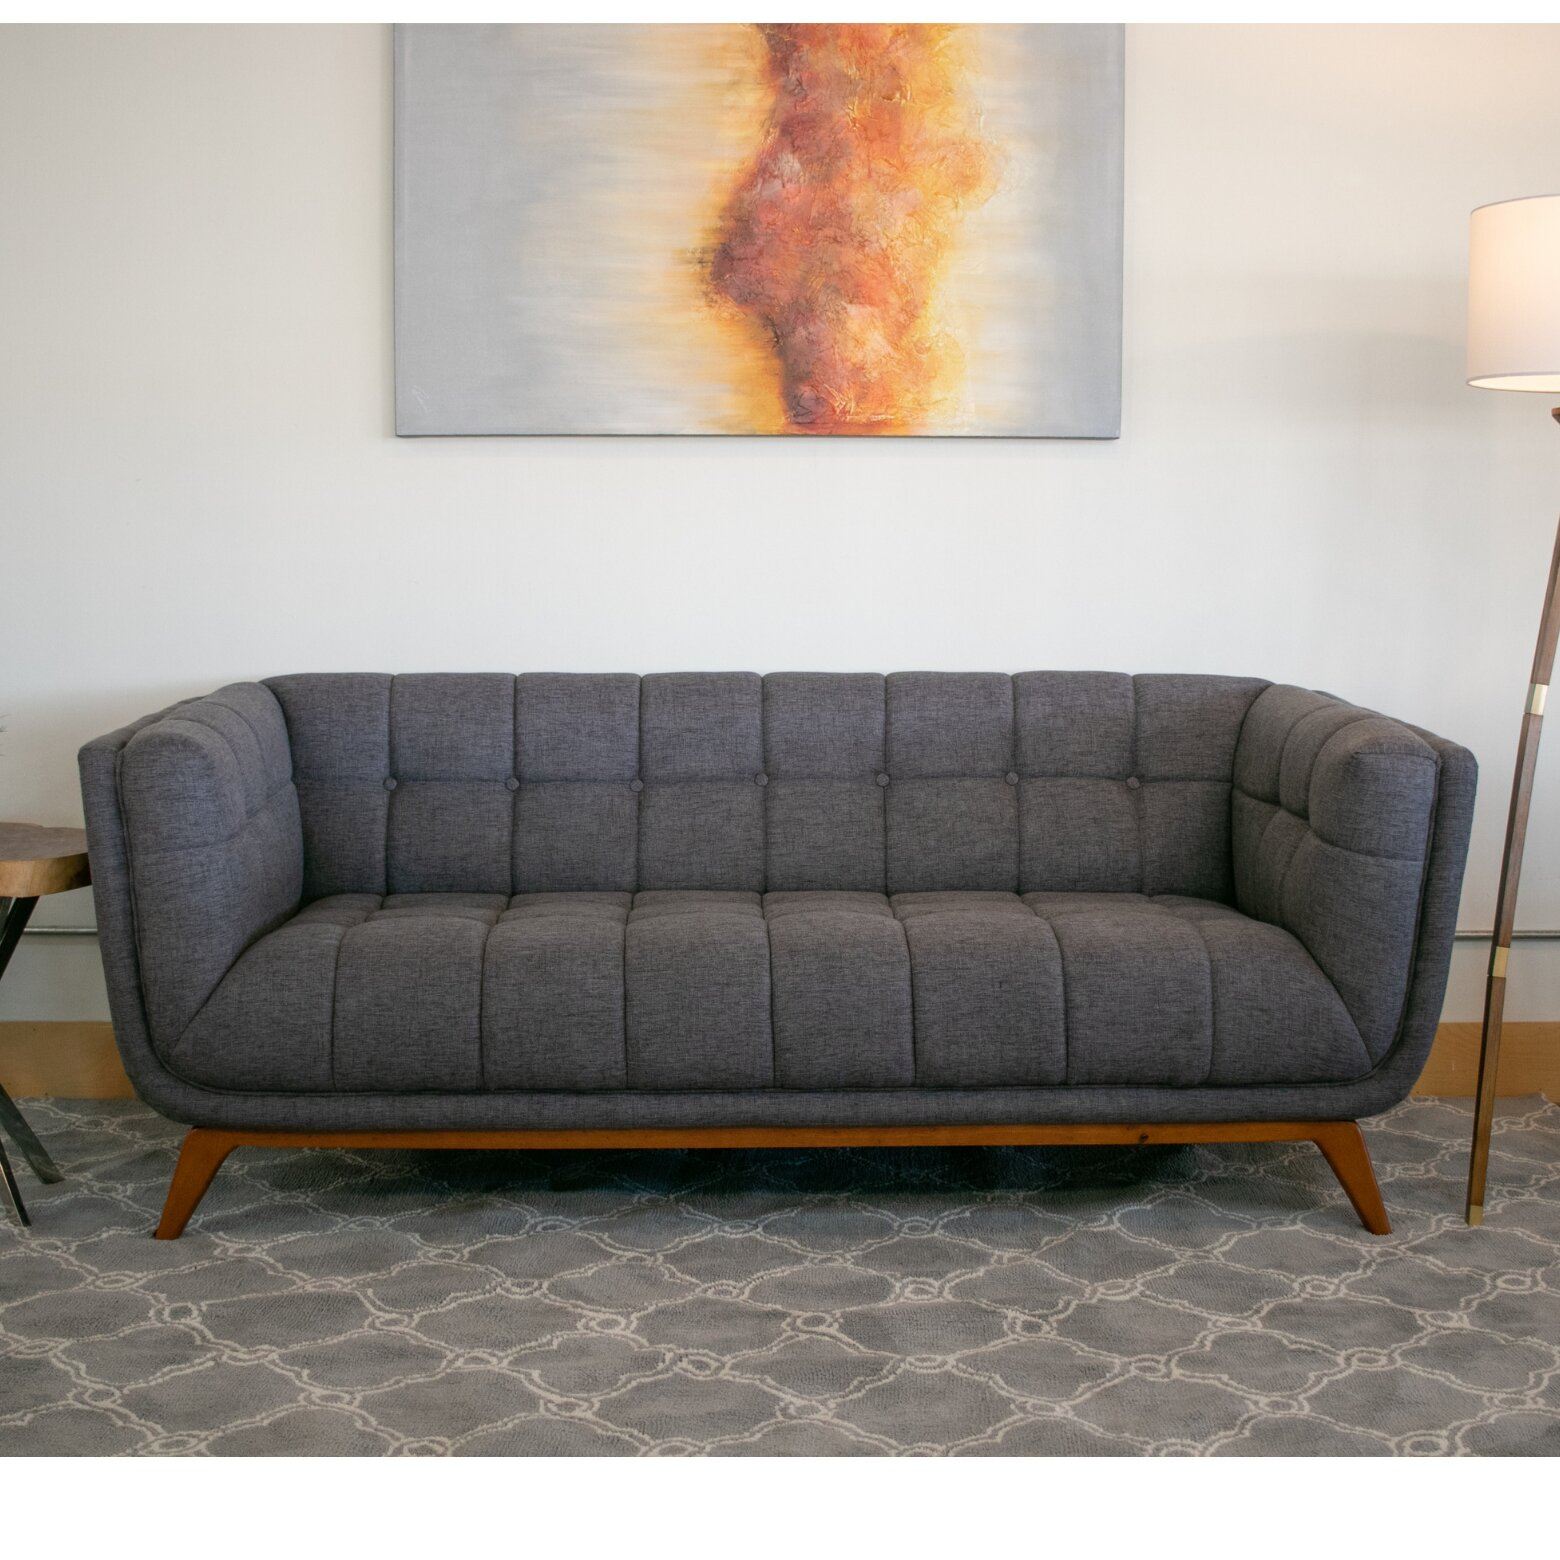 Awe Inspiring Details About Corrigan Studio Luke Mid Century Modern Sofa Cjindustries Chair Design For Home Cjindustriesco